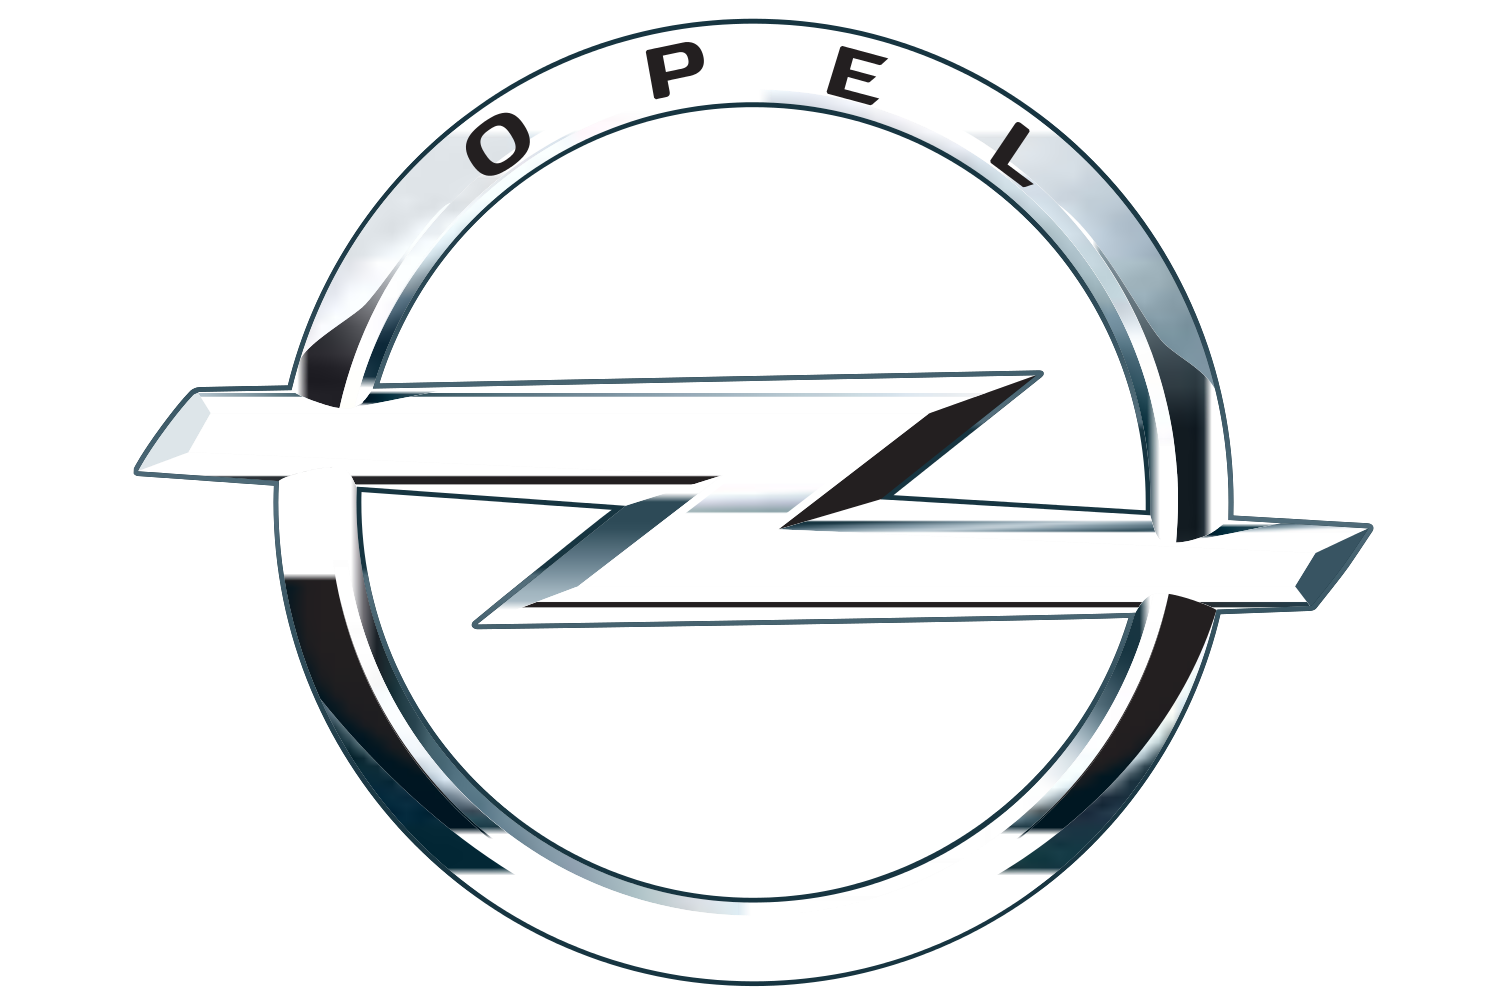 Opel Transparent Png - Opel, Transparent background PNG HD thumbnail